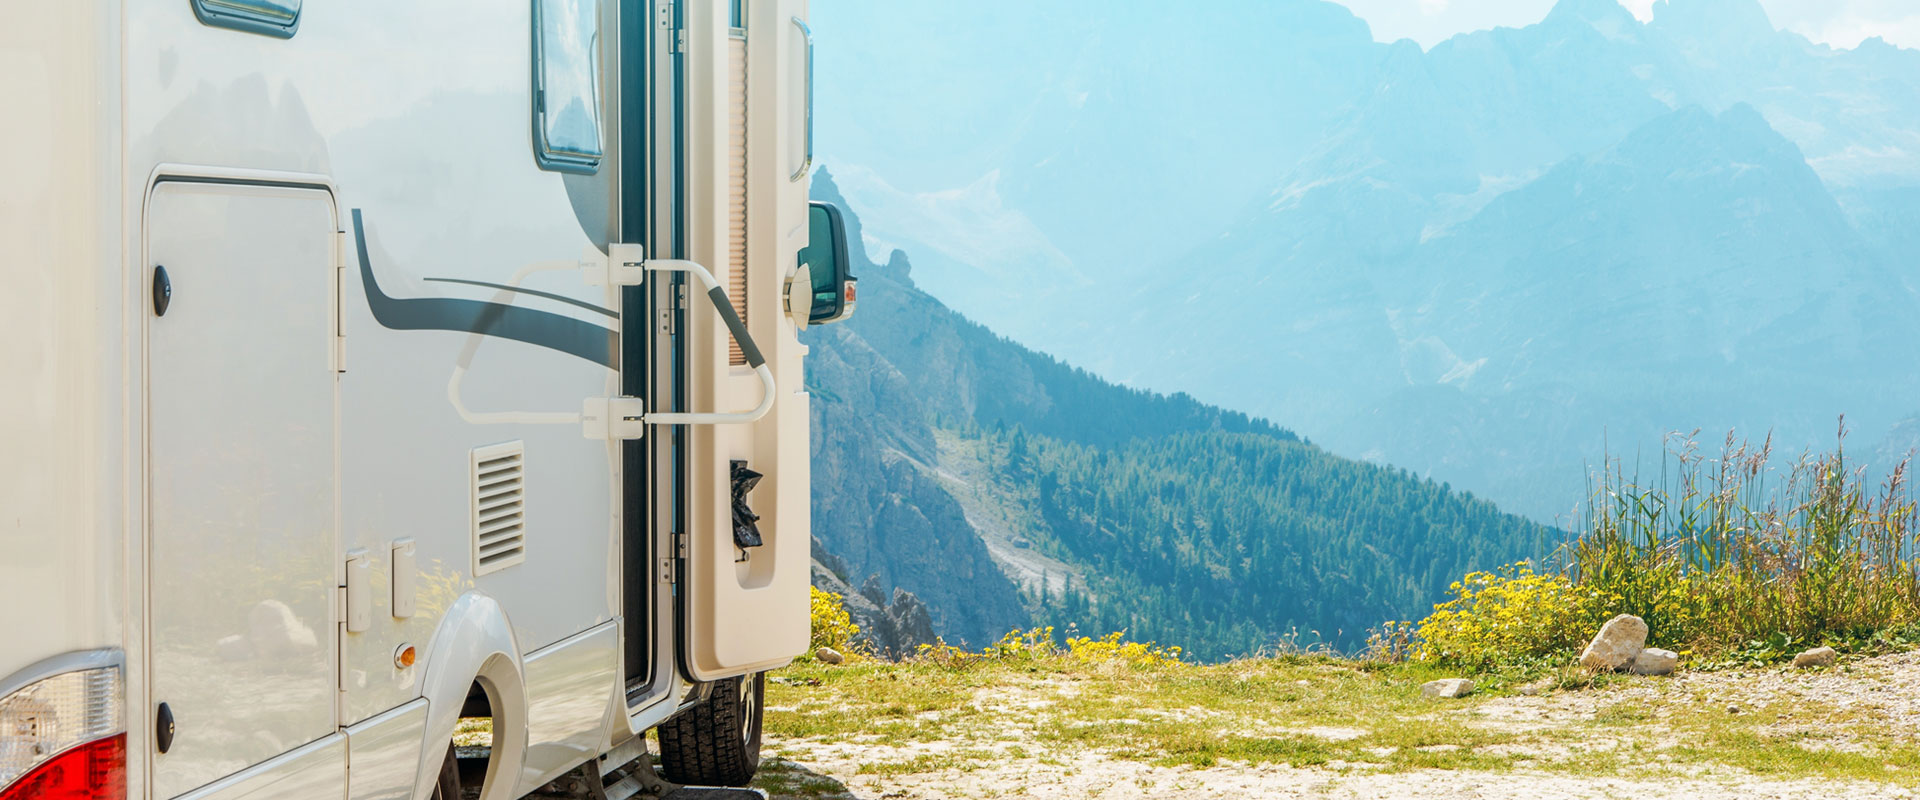 Bring Your RV In Your Repair And We Will Take Off $10 Per Hour For the 1st Three Hours!